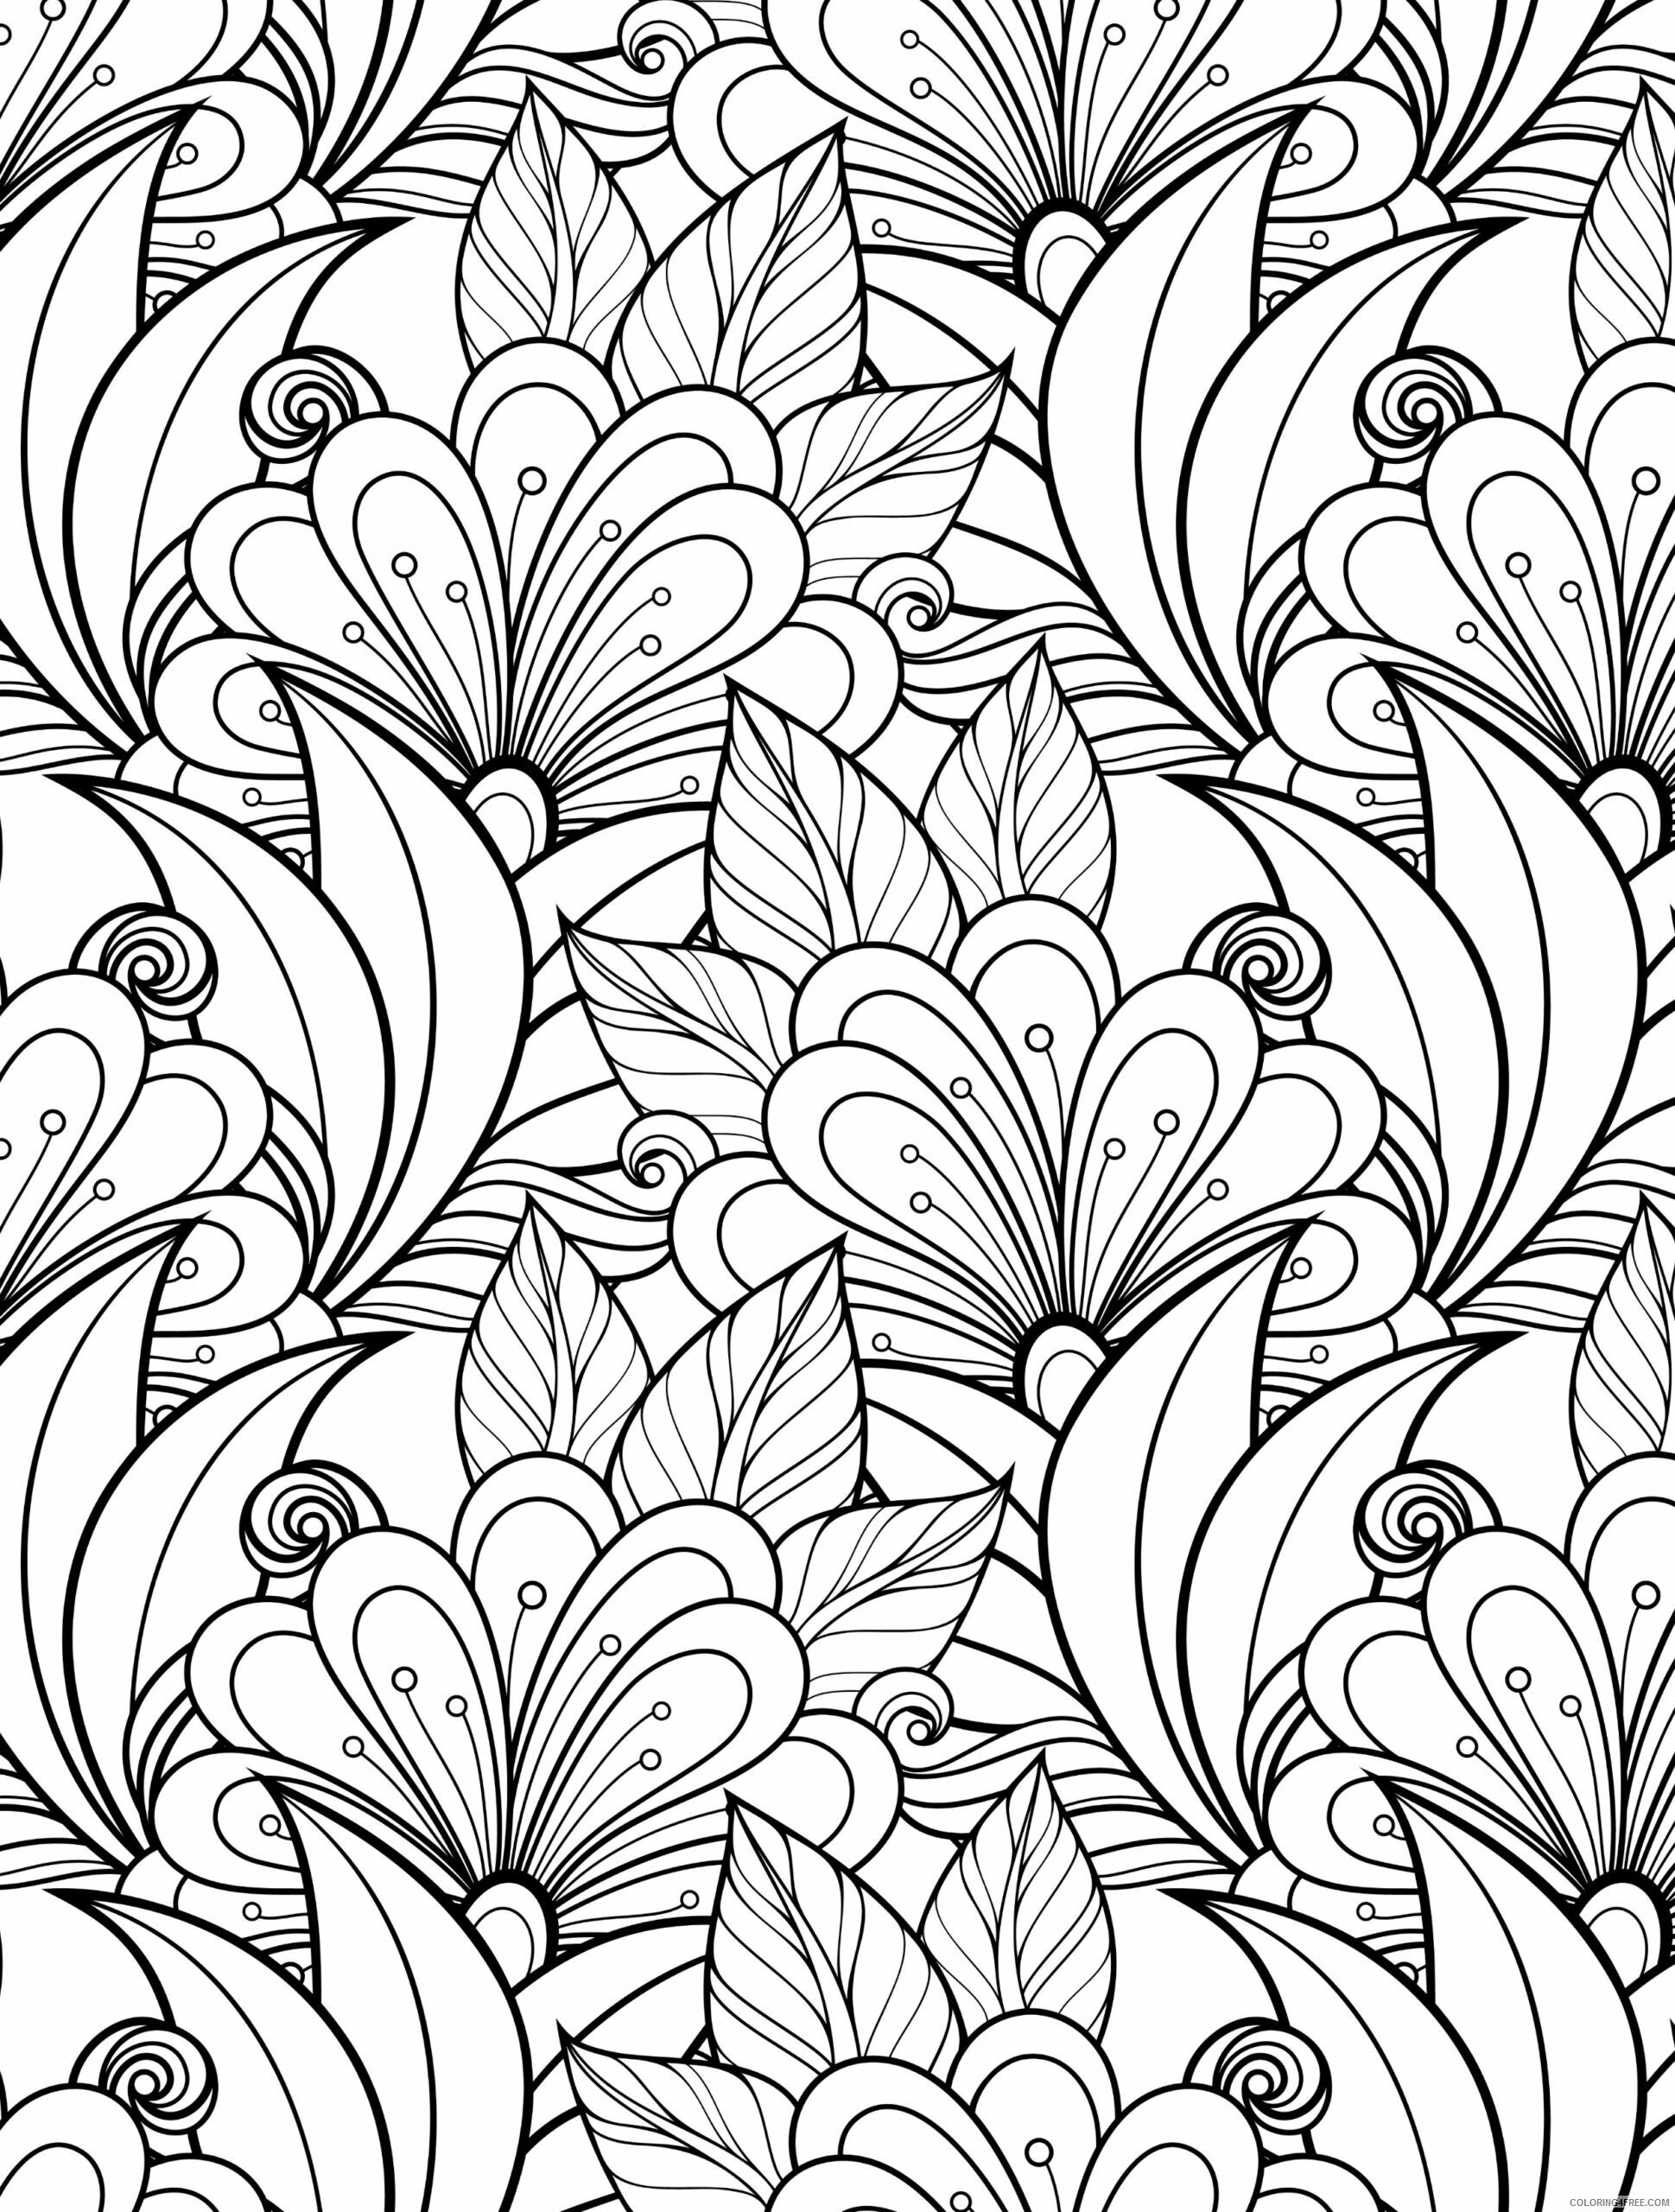 Adult Floral Coloring Pages Floral Patterns For Adults Printable 2020 351 Coloring4free